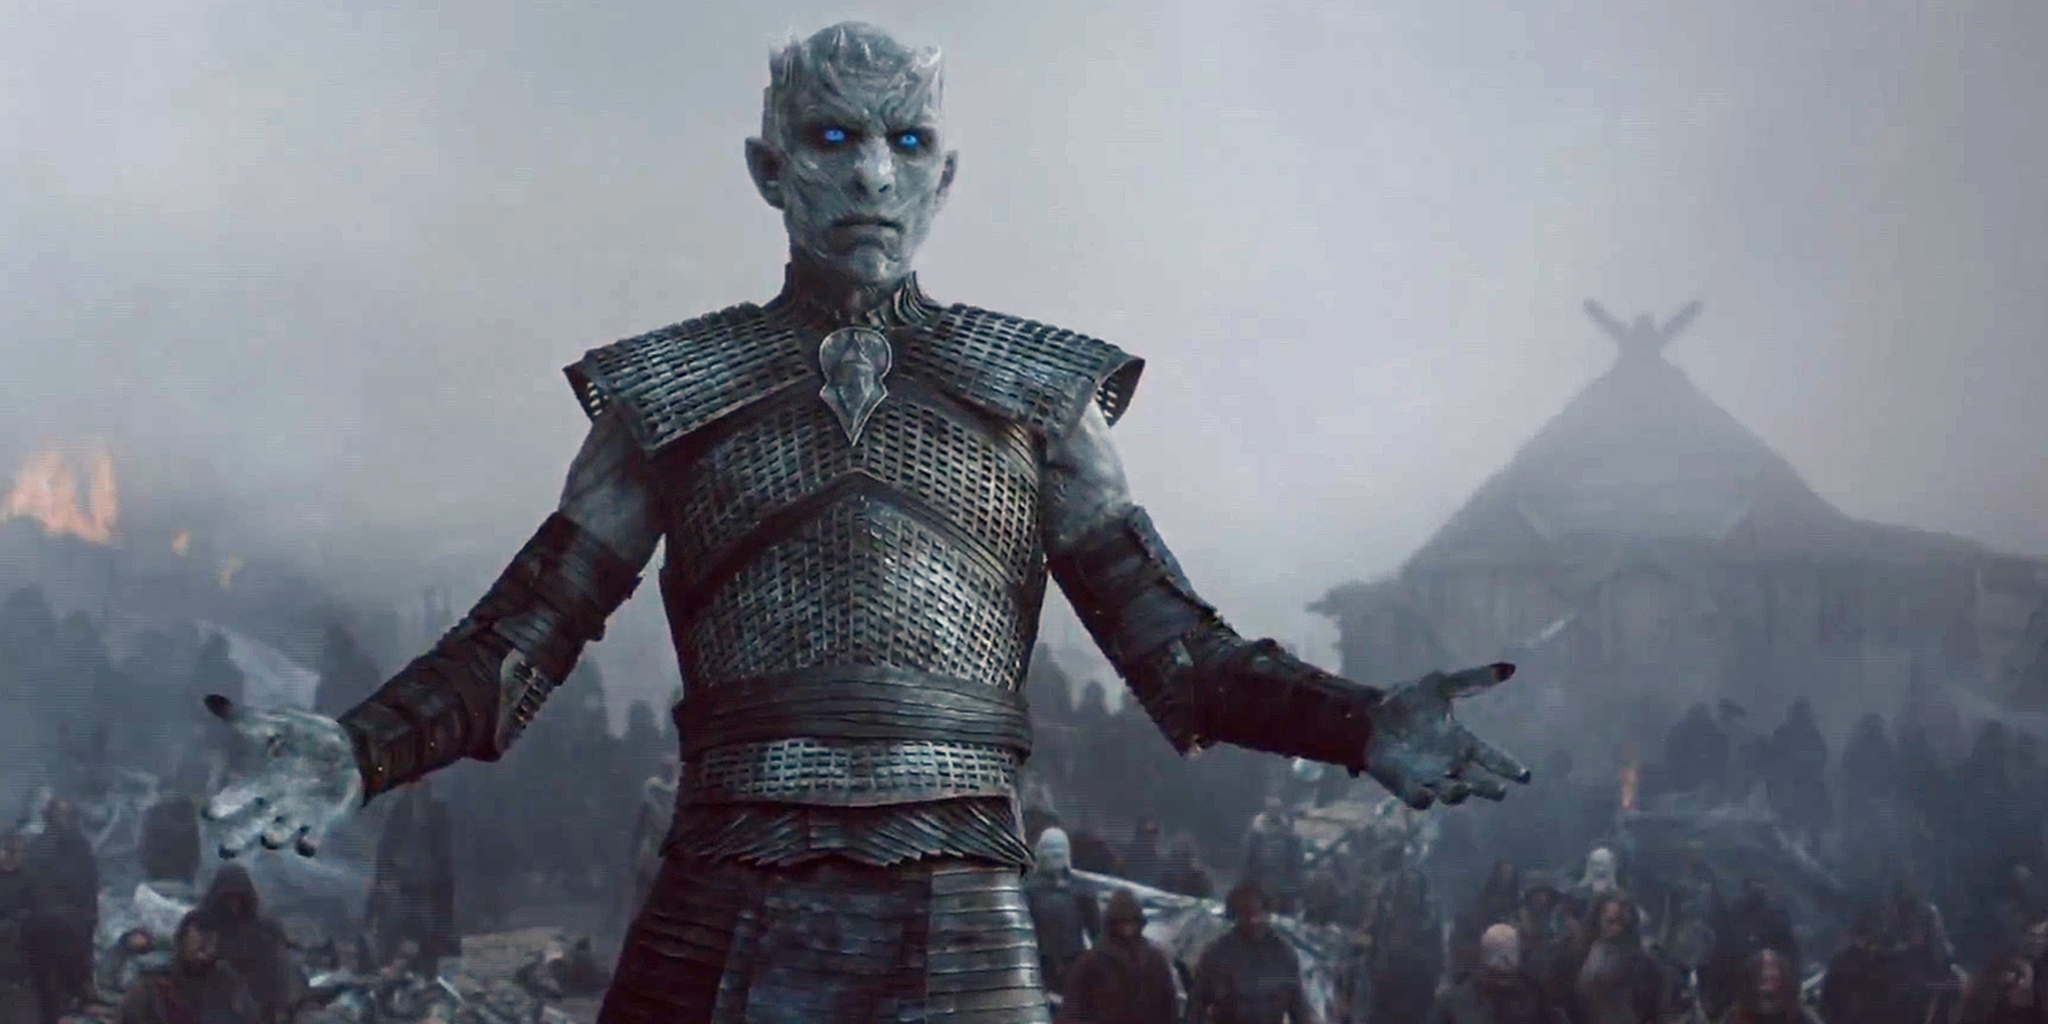 White Walker leader raises his arms